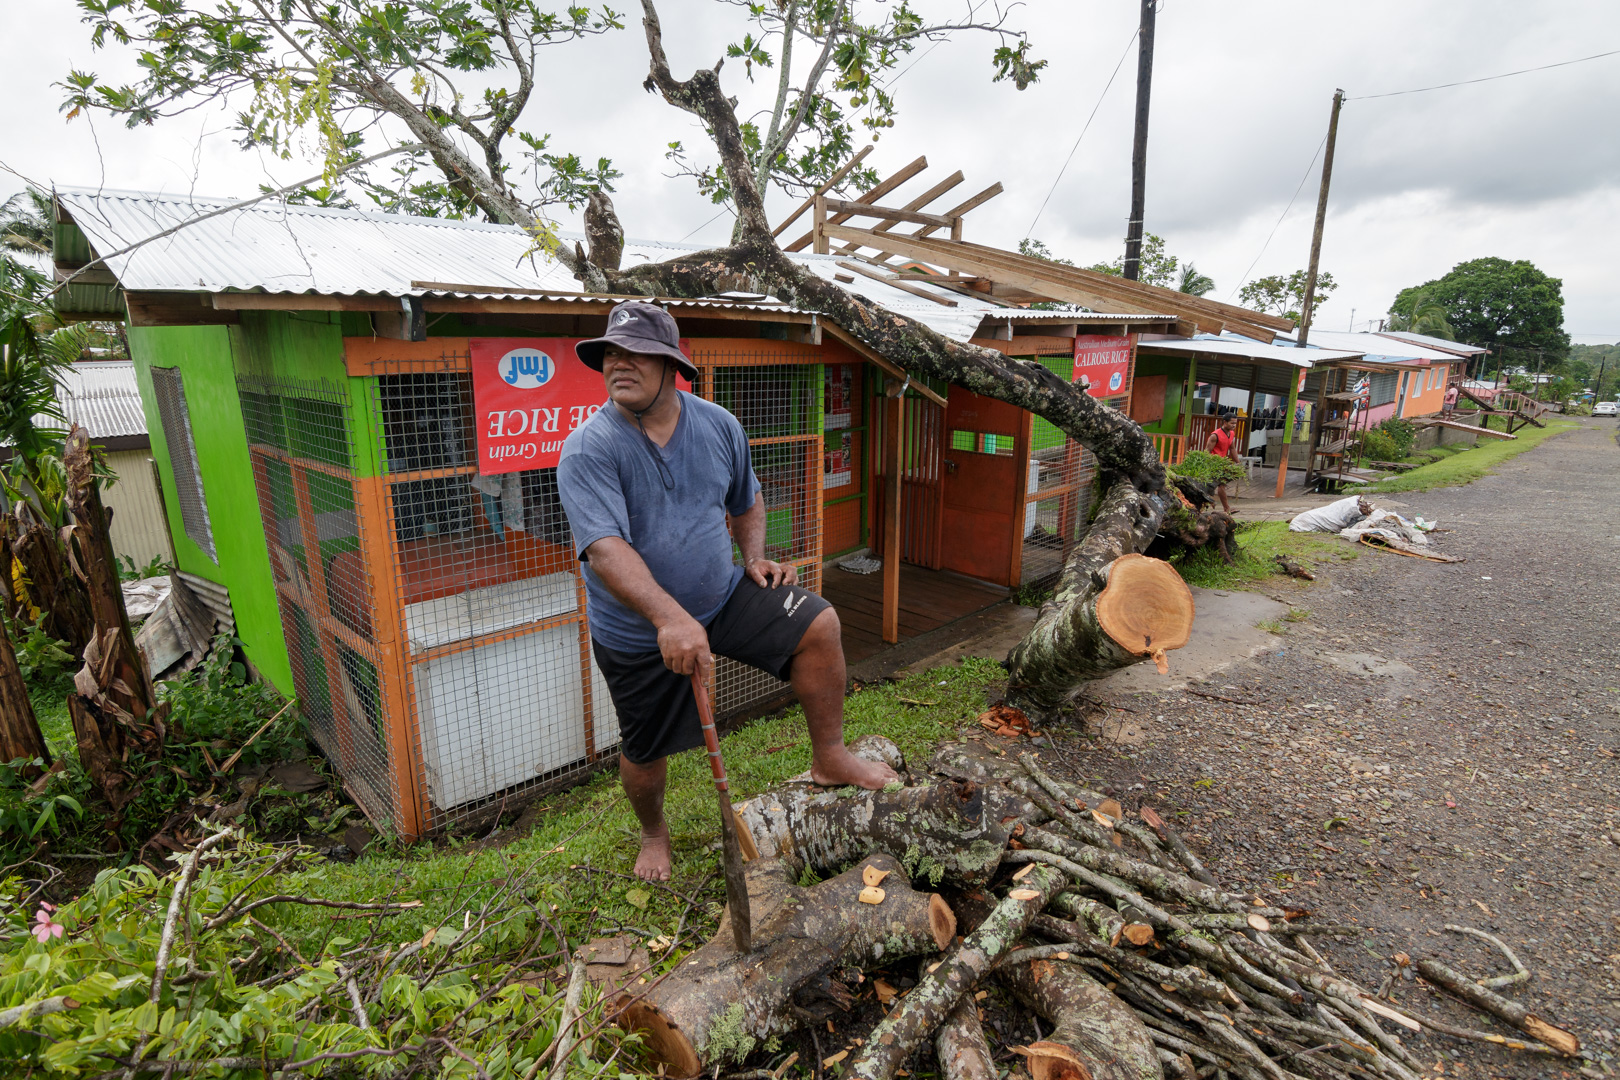 A shopkeeper chops up a tree that had fallen on his roof during Cyclone Winston, as a cleanup continues in the aftermath of the storm in Fiji's capital Suva, February 22, 2016.